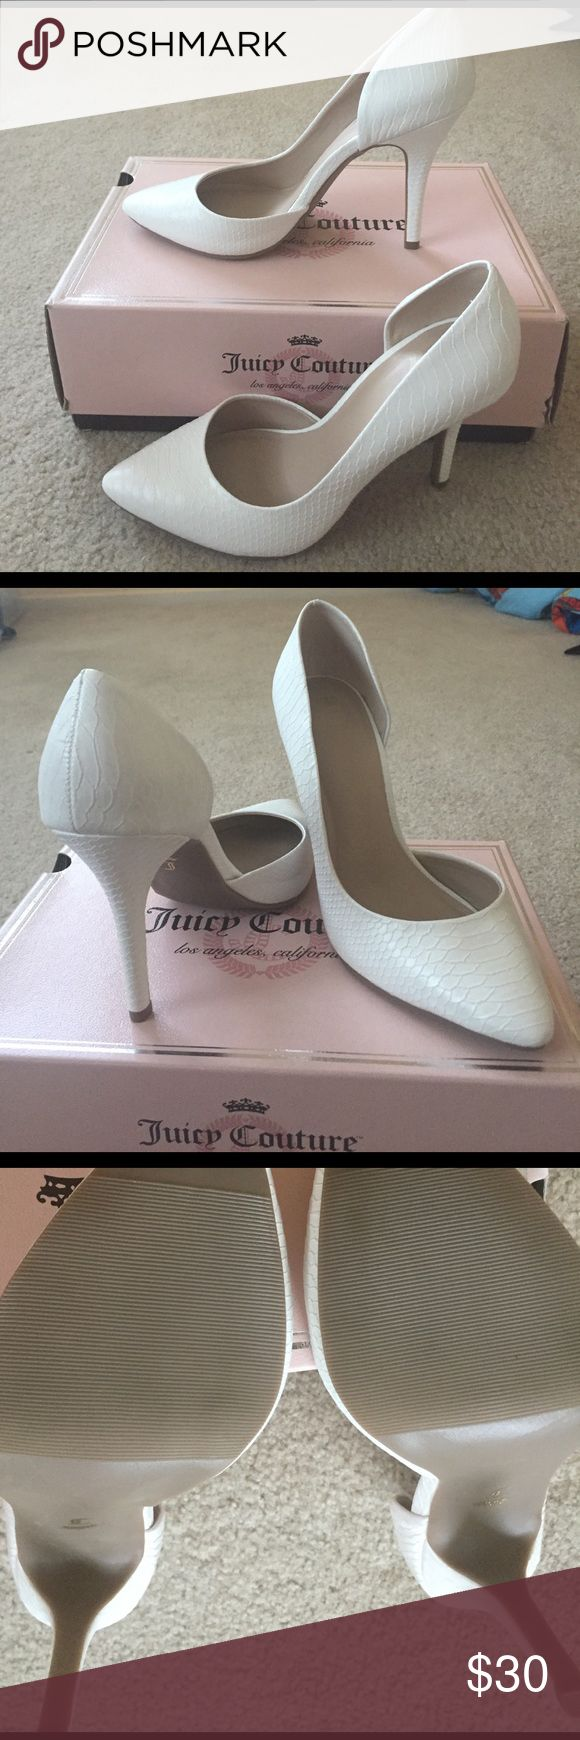 """NWT Juicy Couture Sexy Pumps 👠 New Juicy Couture so stylish and sexy Pumps. There's a slight flaw on the right shoe with hair line indentations. (see last picture and reflected on lower price) but not noticeable unless doing a really closeup inspection. 4"""" heel. Juicy Couture Shoes Heels"""